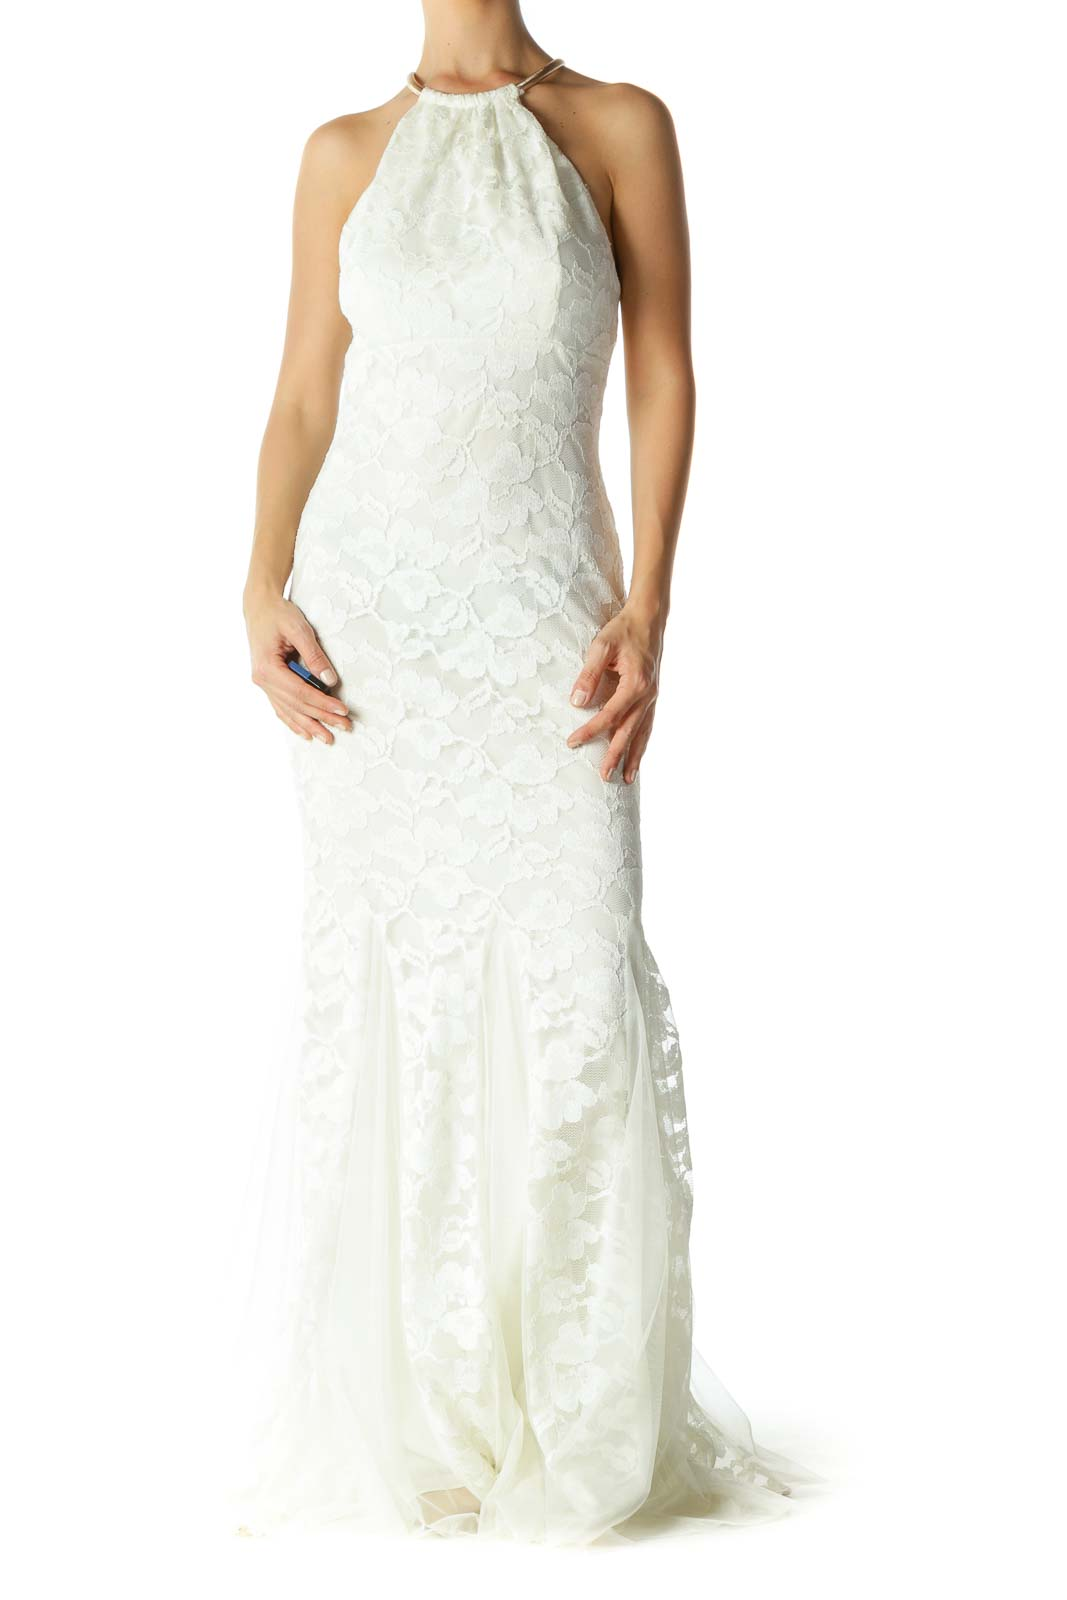 Cream Lace Tulle Halter with Gold Hardware Evening Dress